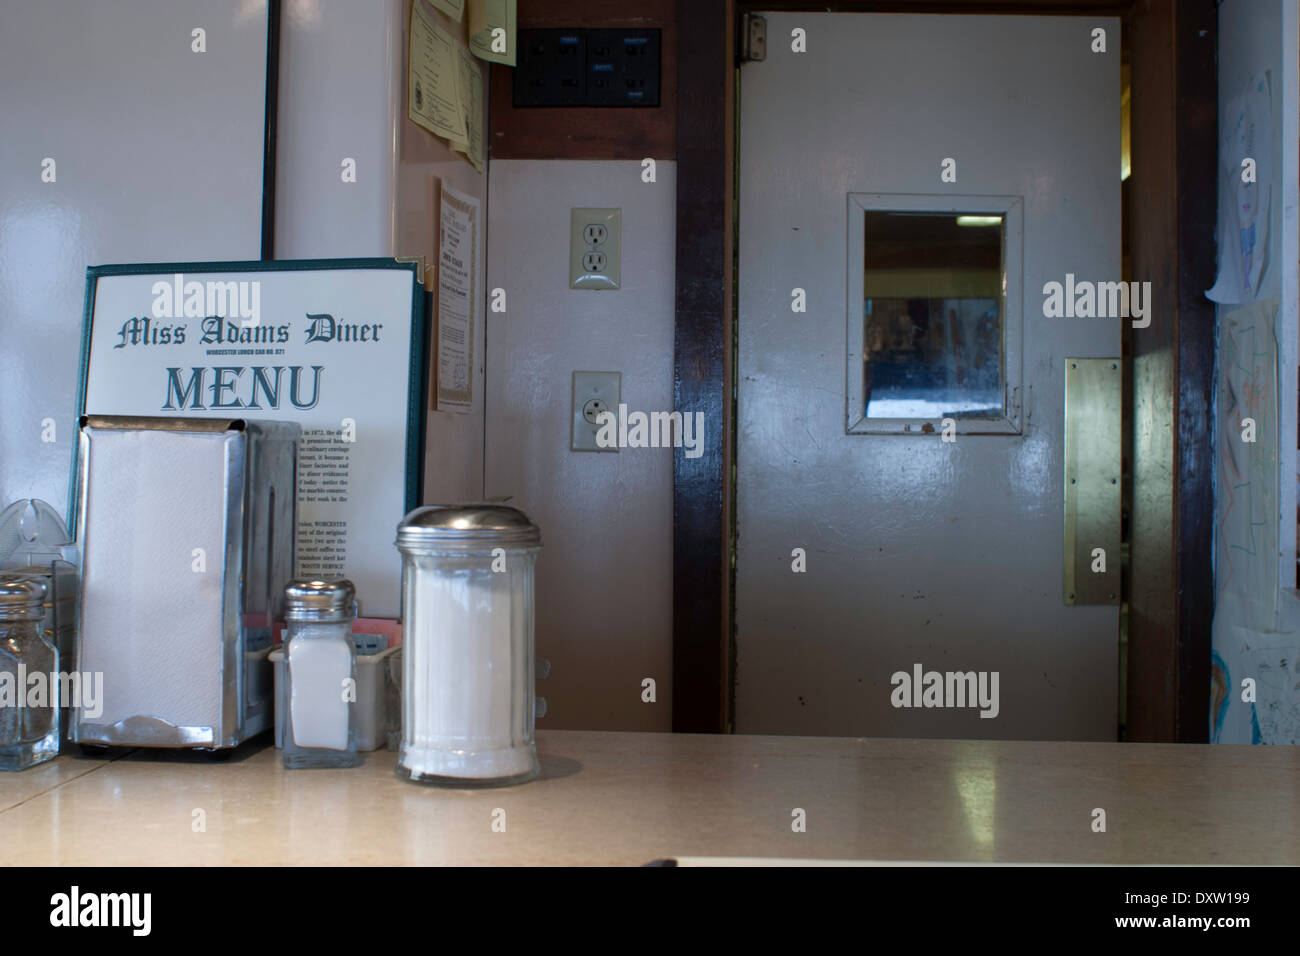 Diner menu sits on the counter in a small town diner. Door to kitchen is in rear. & Diner menu sits on the counter in a small town diner. Door to ...